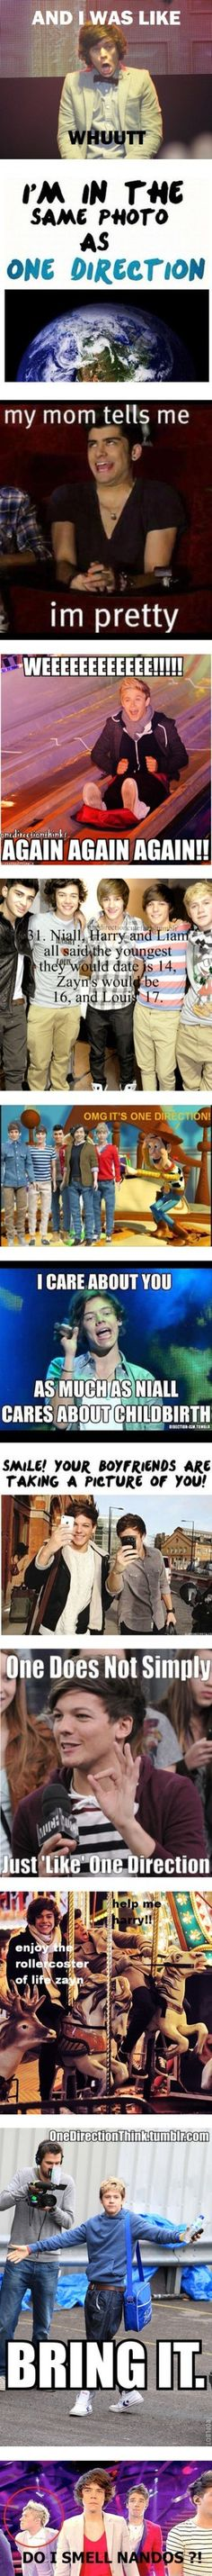 I'm going to start saying that to people, I care about you as much as niall cares about childbirth